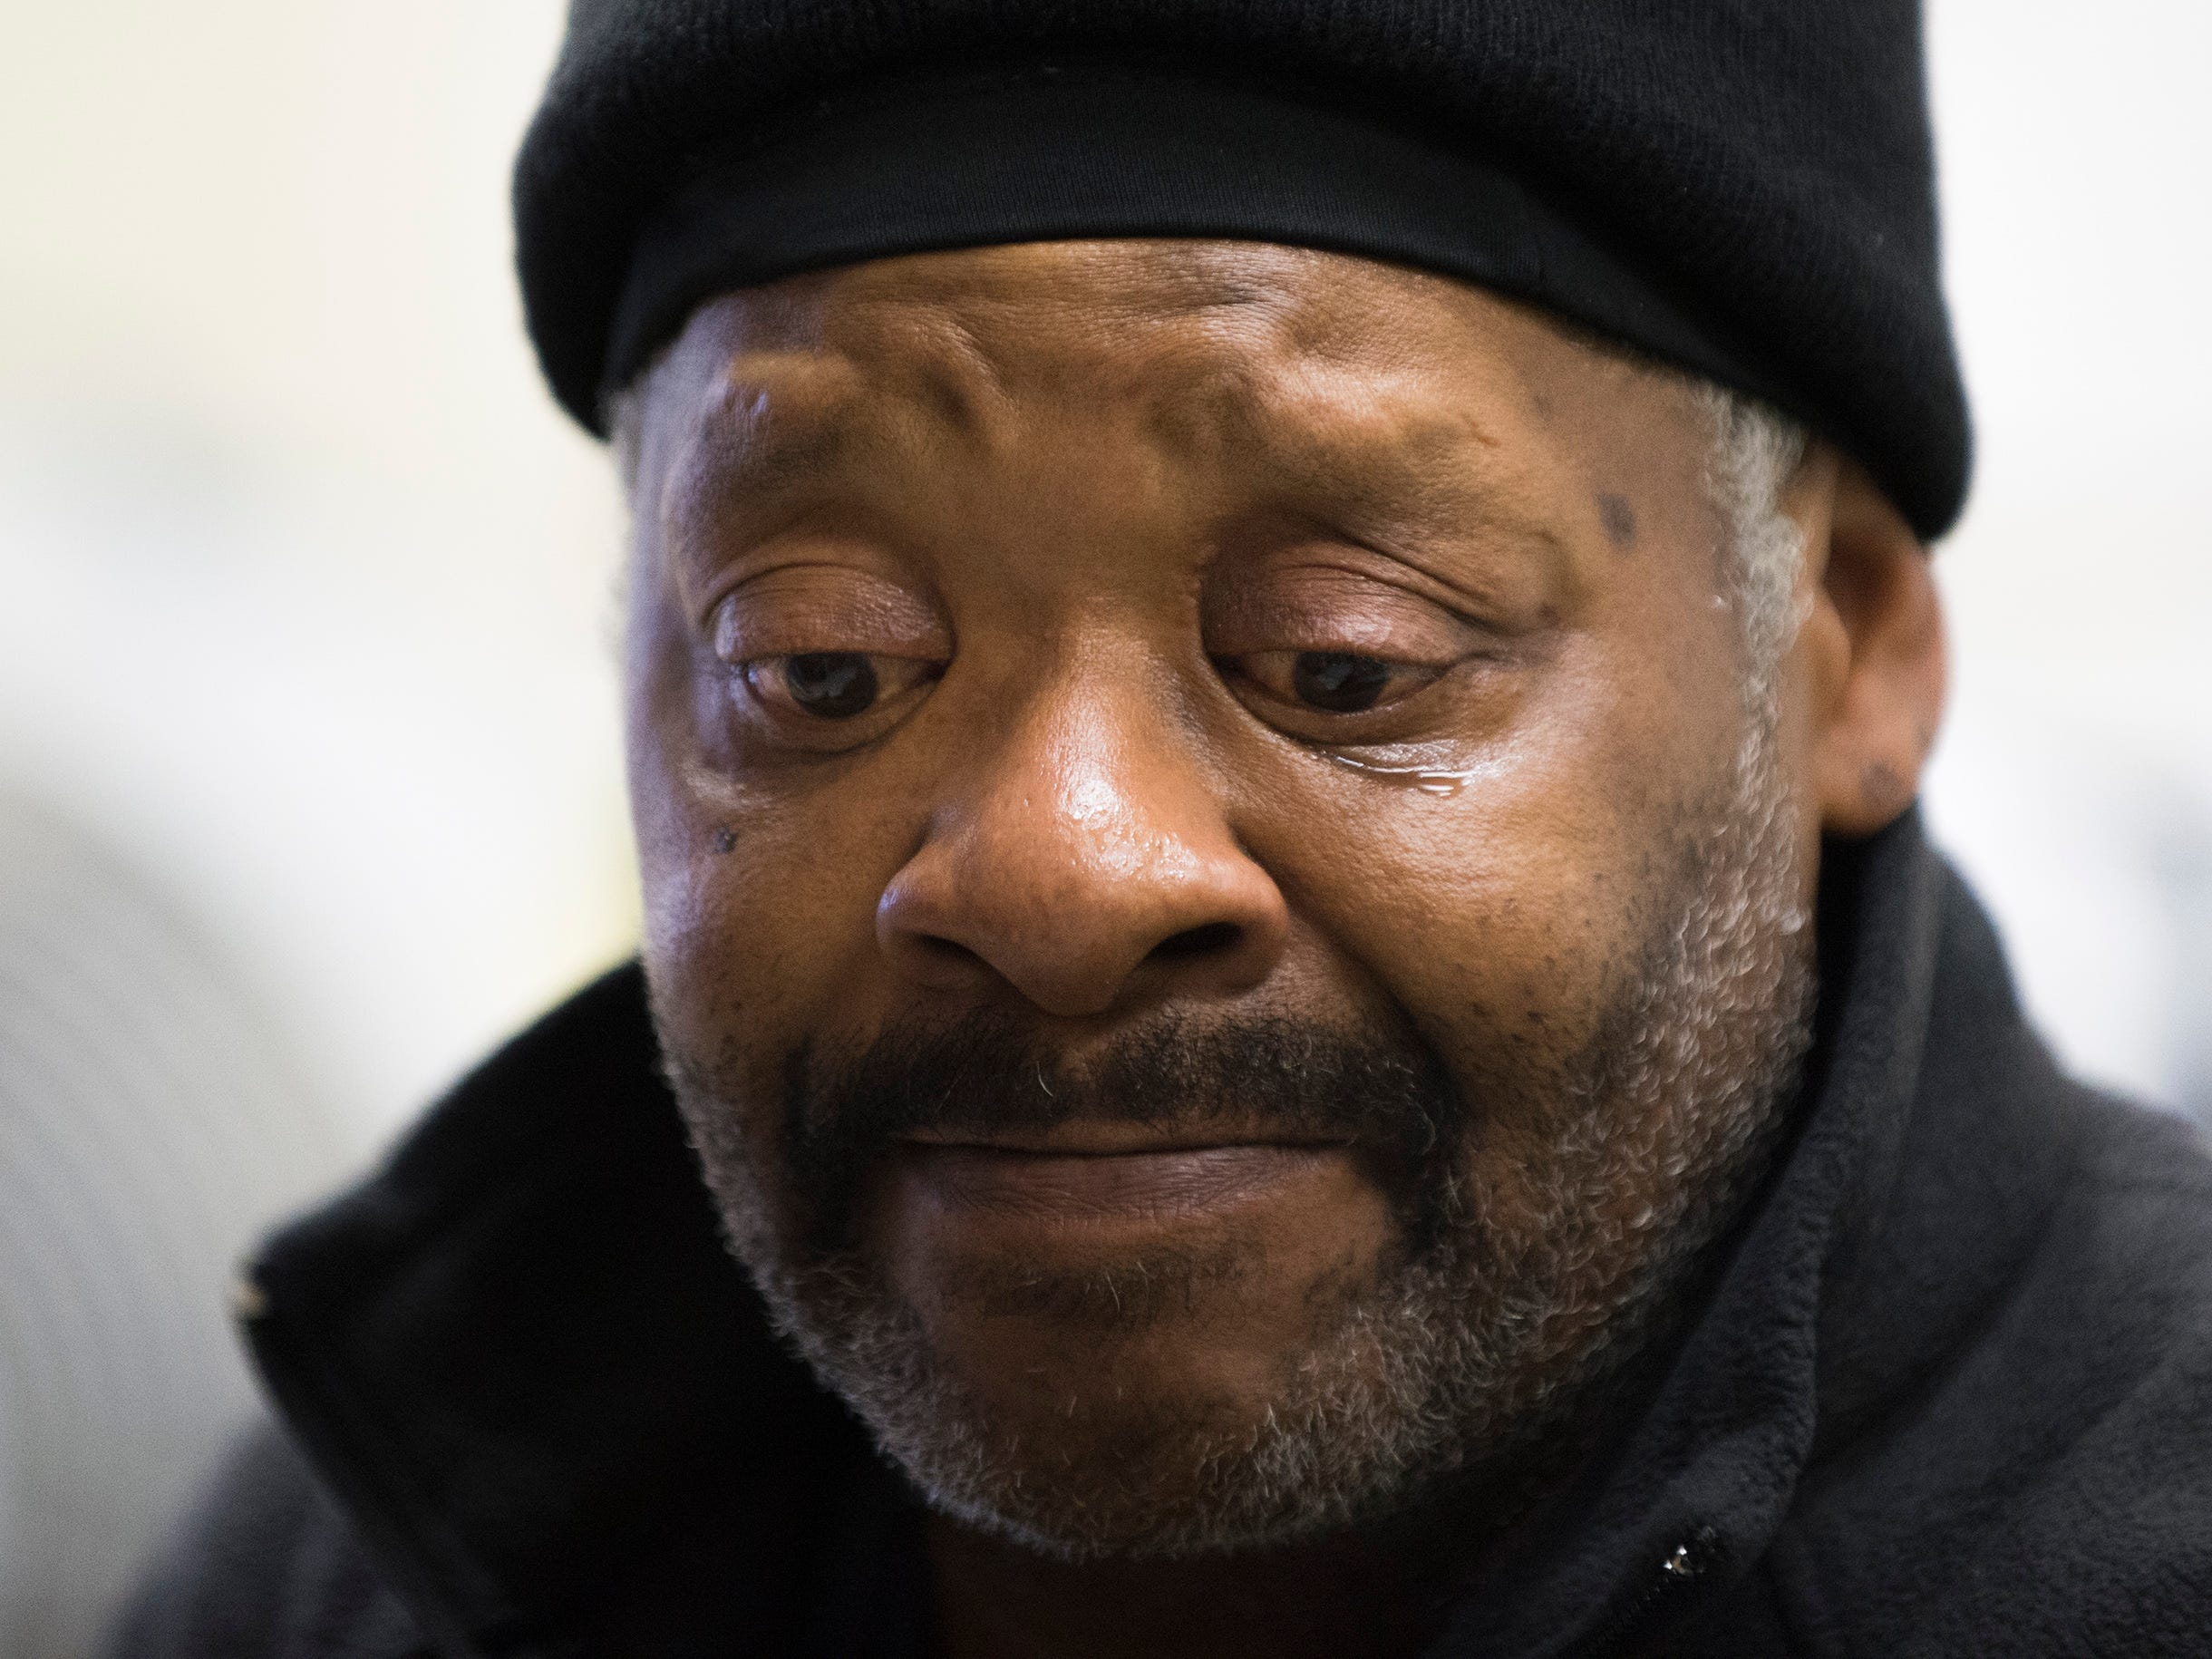 Robert Carroway, 60, who is homeless, reflects on his past circumstances Tuesday, Nov. 13, 2018 at Joseph's House in Camden, N.J. Carroway suffered multiple family tragedies over the years but is now on track to receive proper identification and social security.